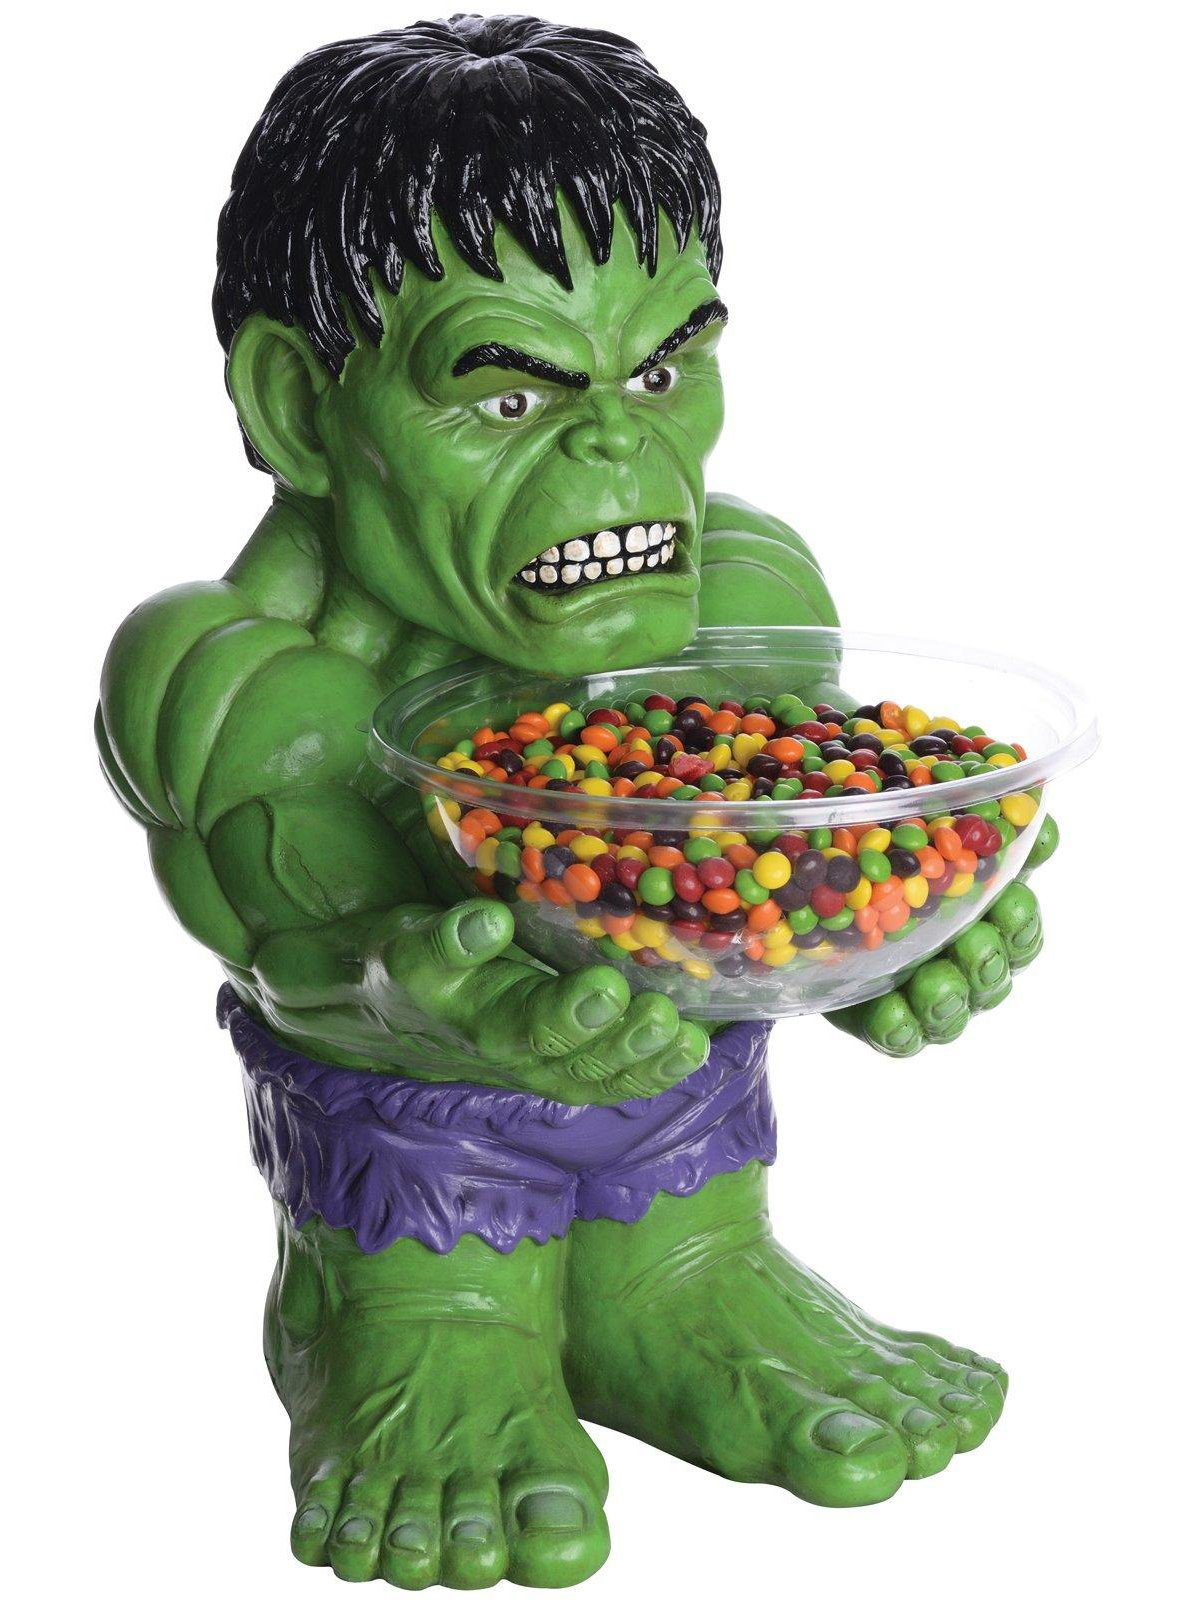 Rubie's The Hulk Candy Bowl and Holder